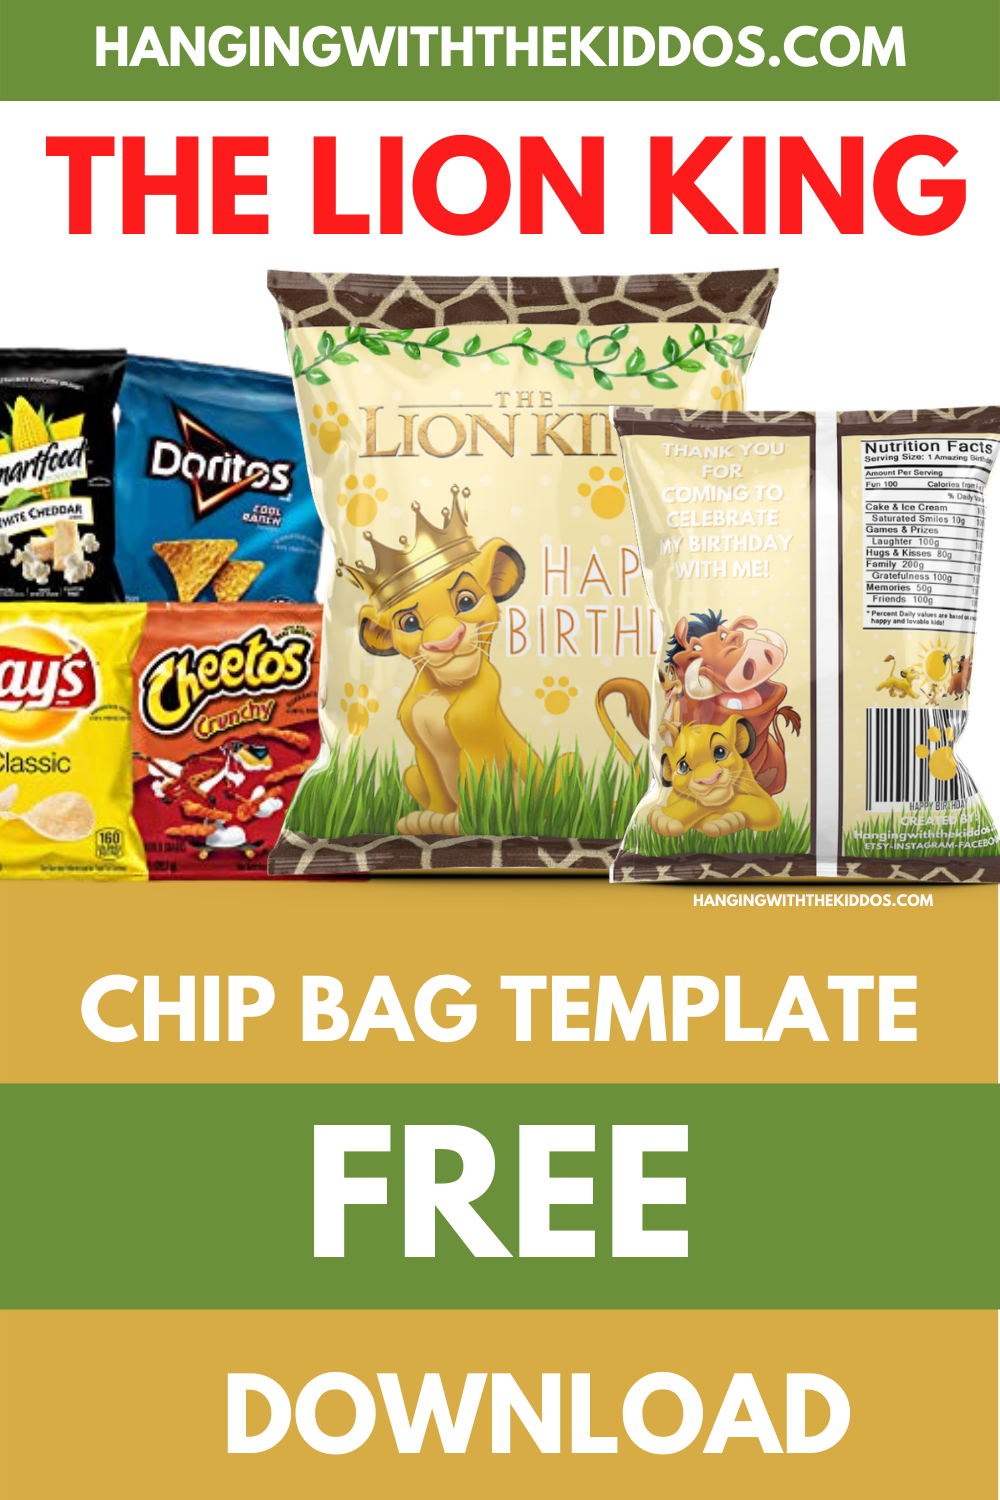 FREE LION KING PARTY PRINTABLE CHIP BAG TEMPLATE